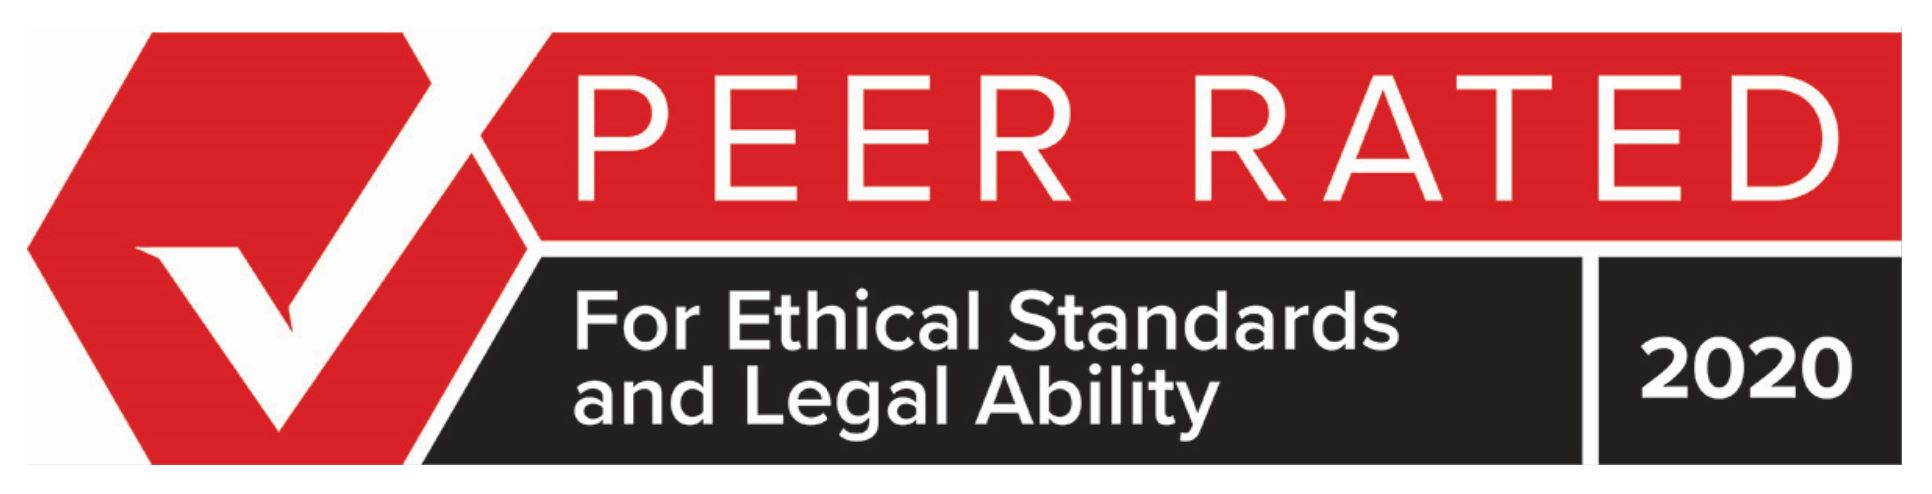 Firm Peer Rated Badge